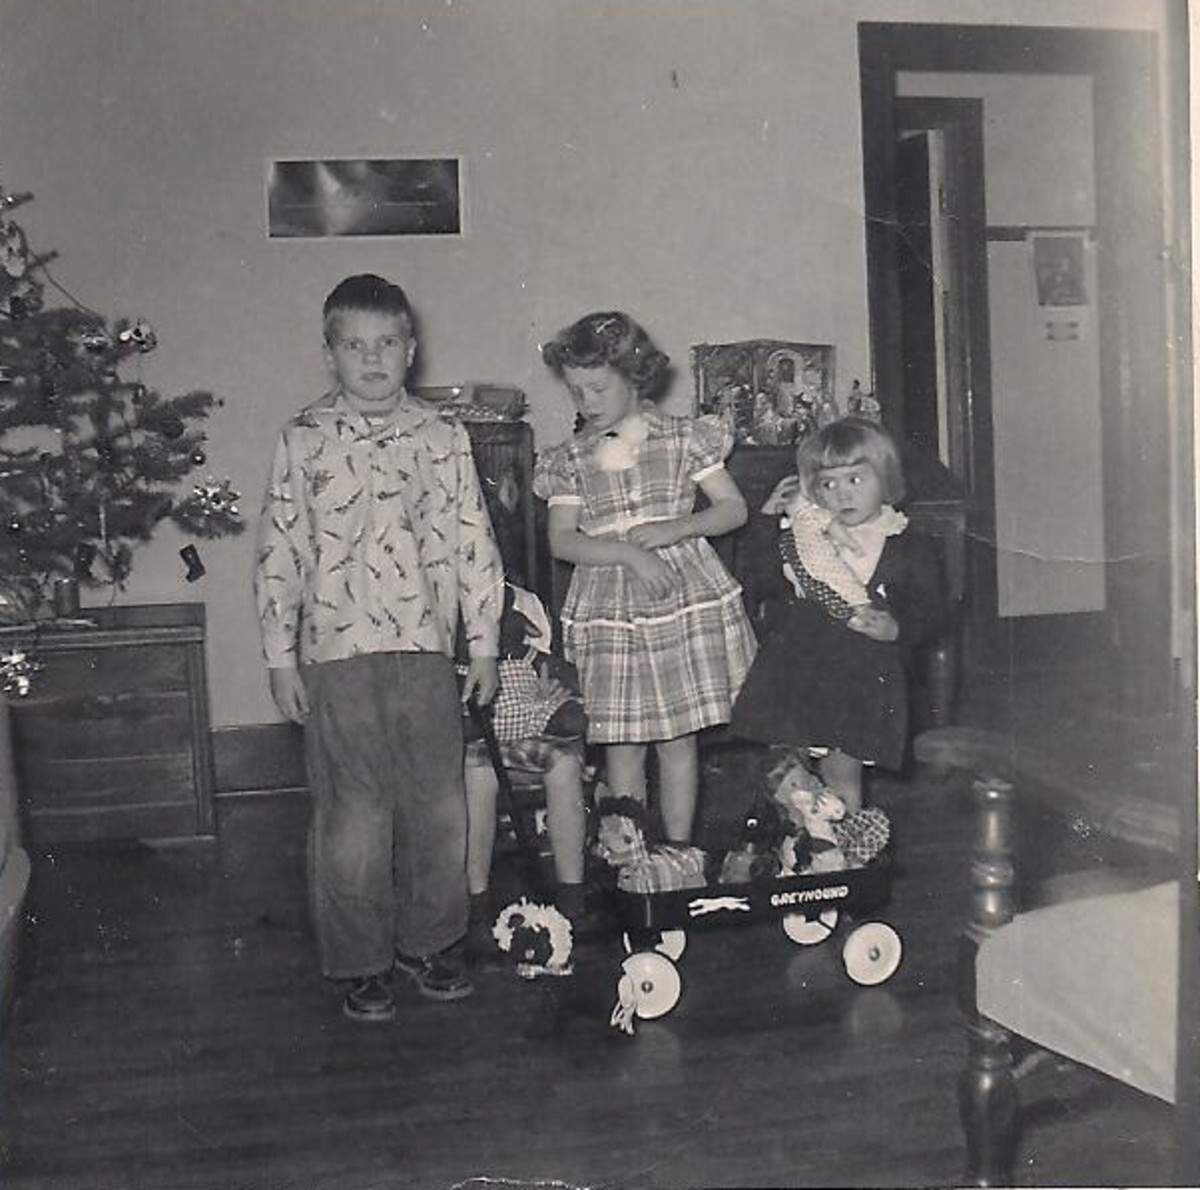 Here I am with all my siblings with our homemade gifts. What a happy Christmas we had. Mom made me a new dress and some stuffed toys for my sisters.